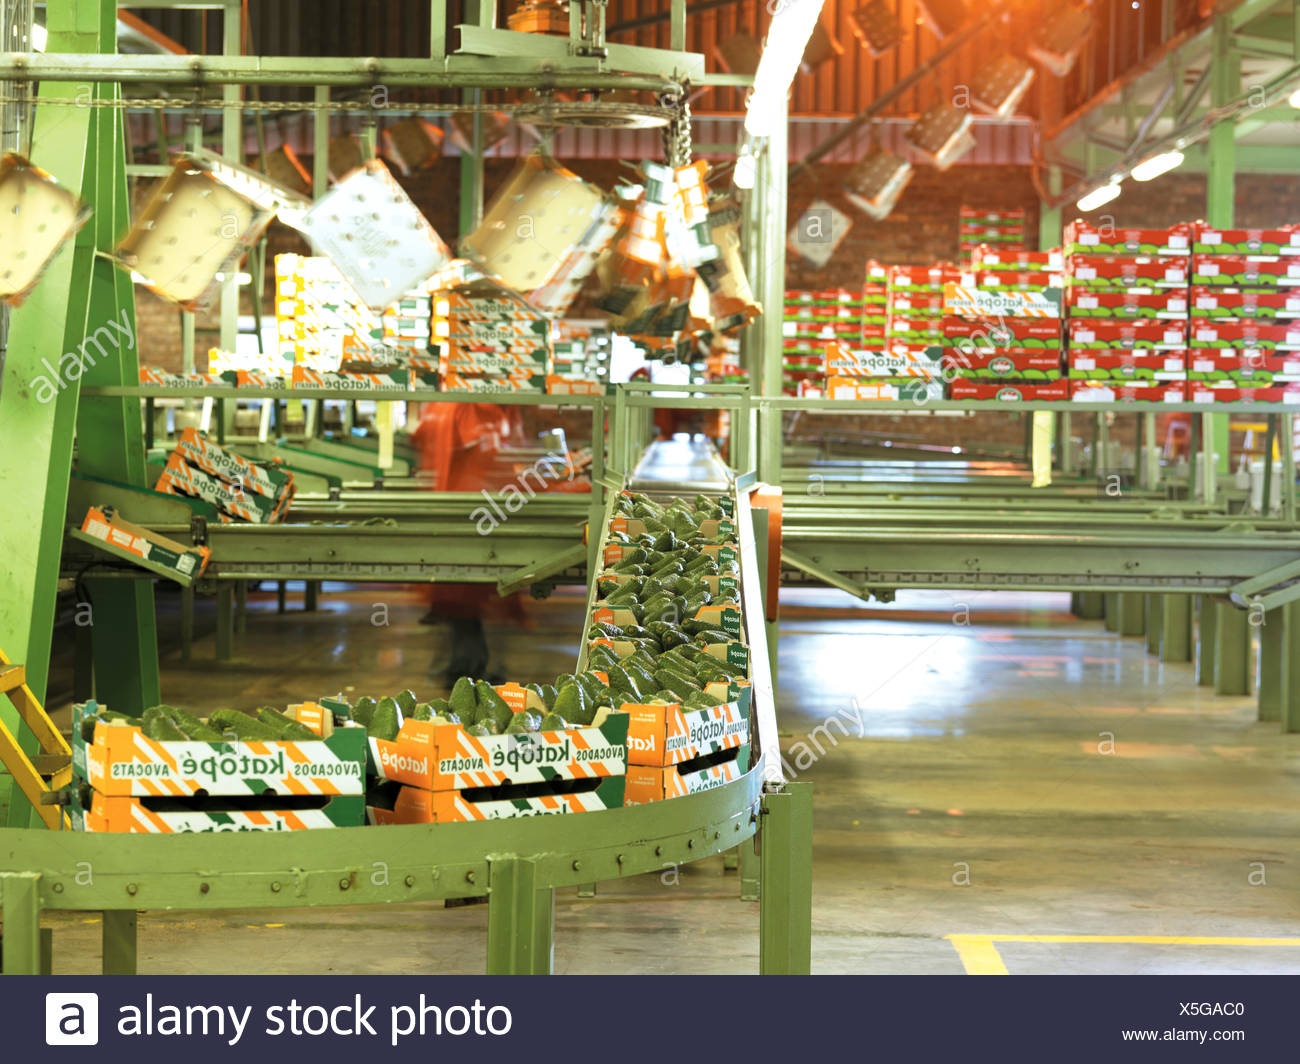 Production line of boxed avocados, Burpack - Stock Image